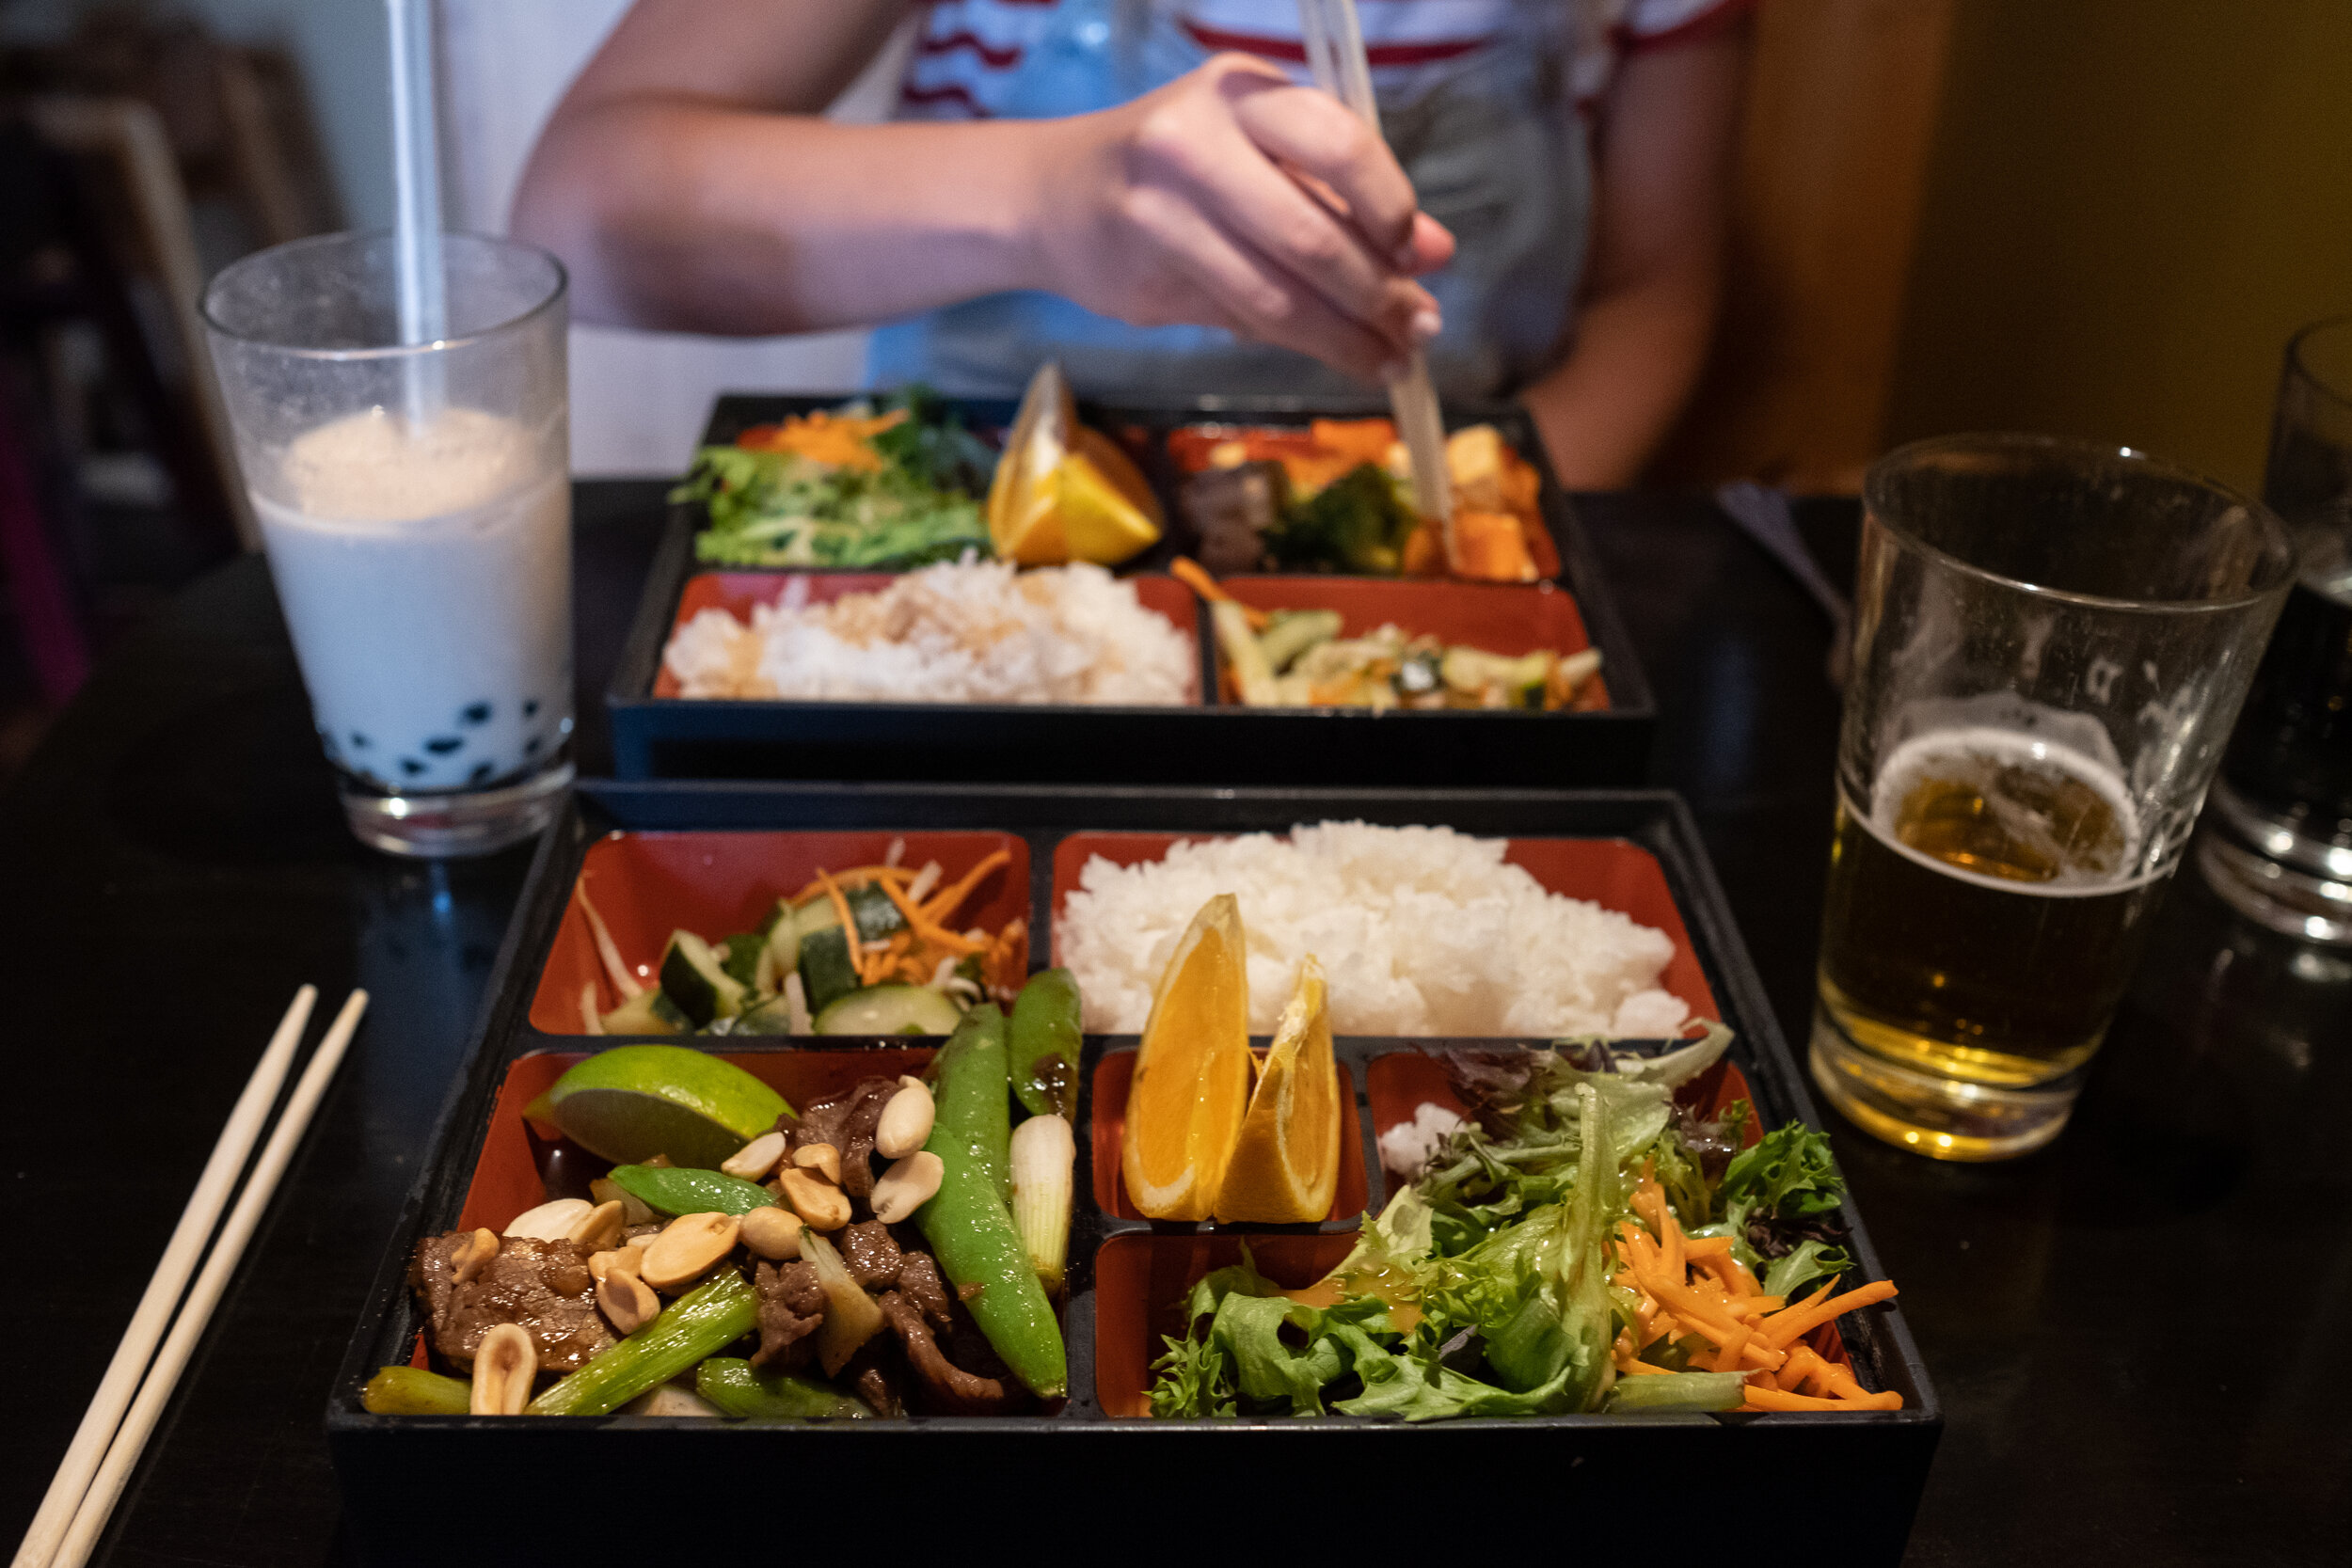 Go to Iza for the bento boxes!